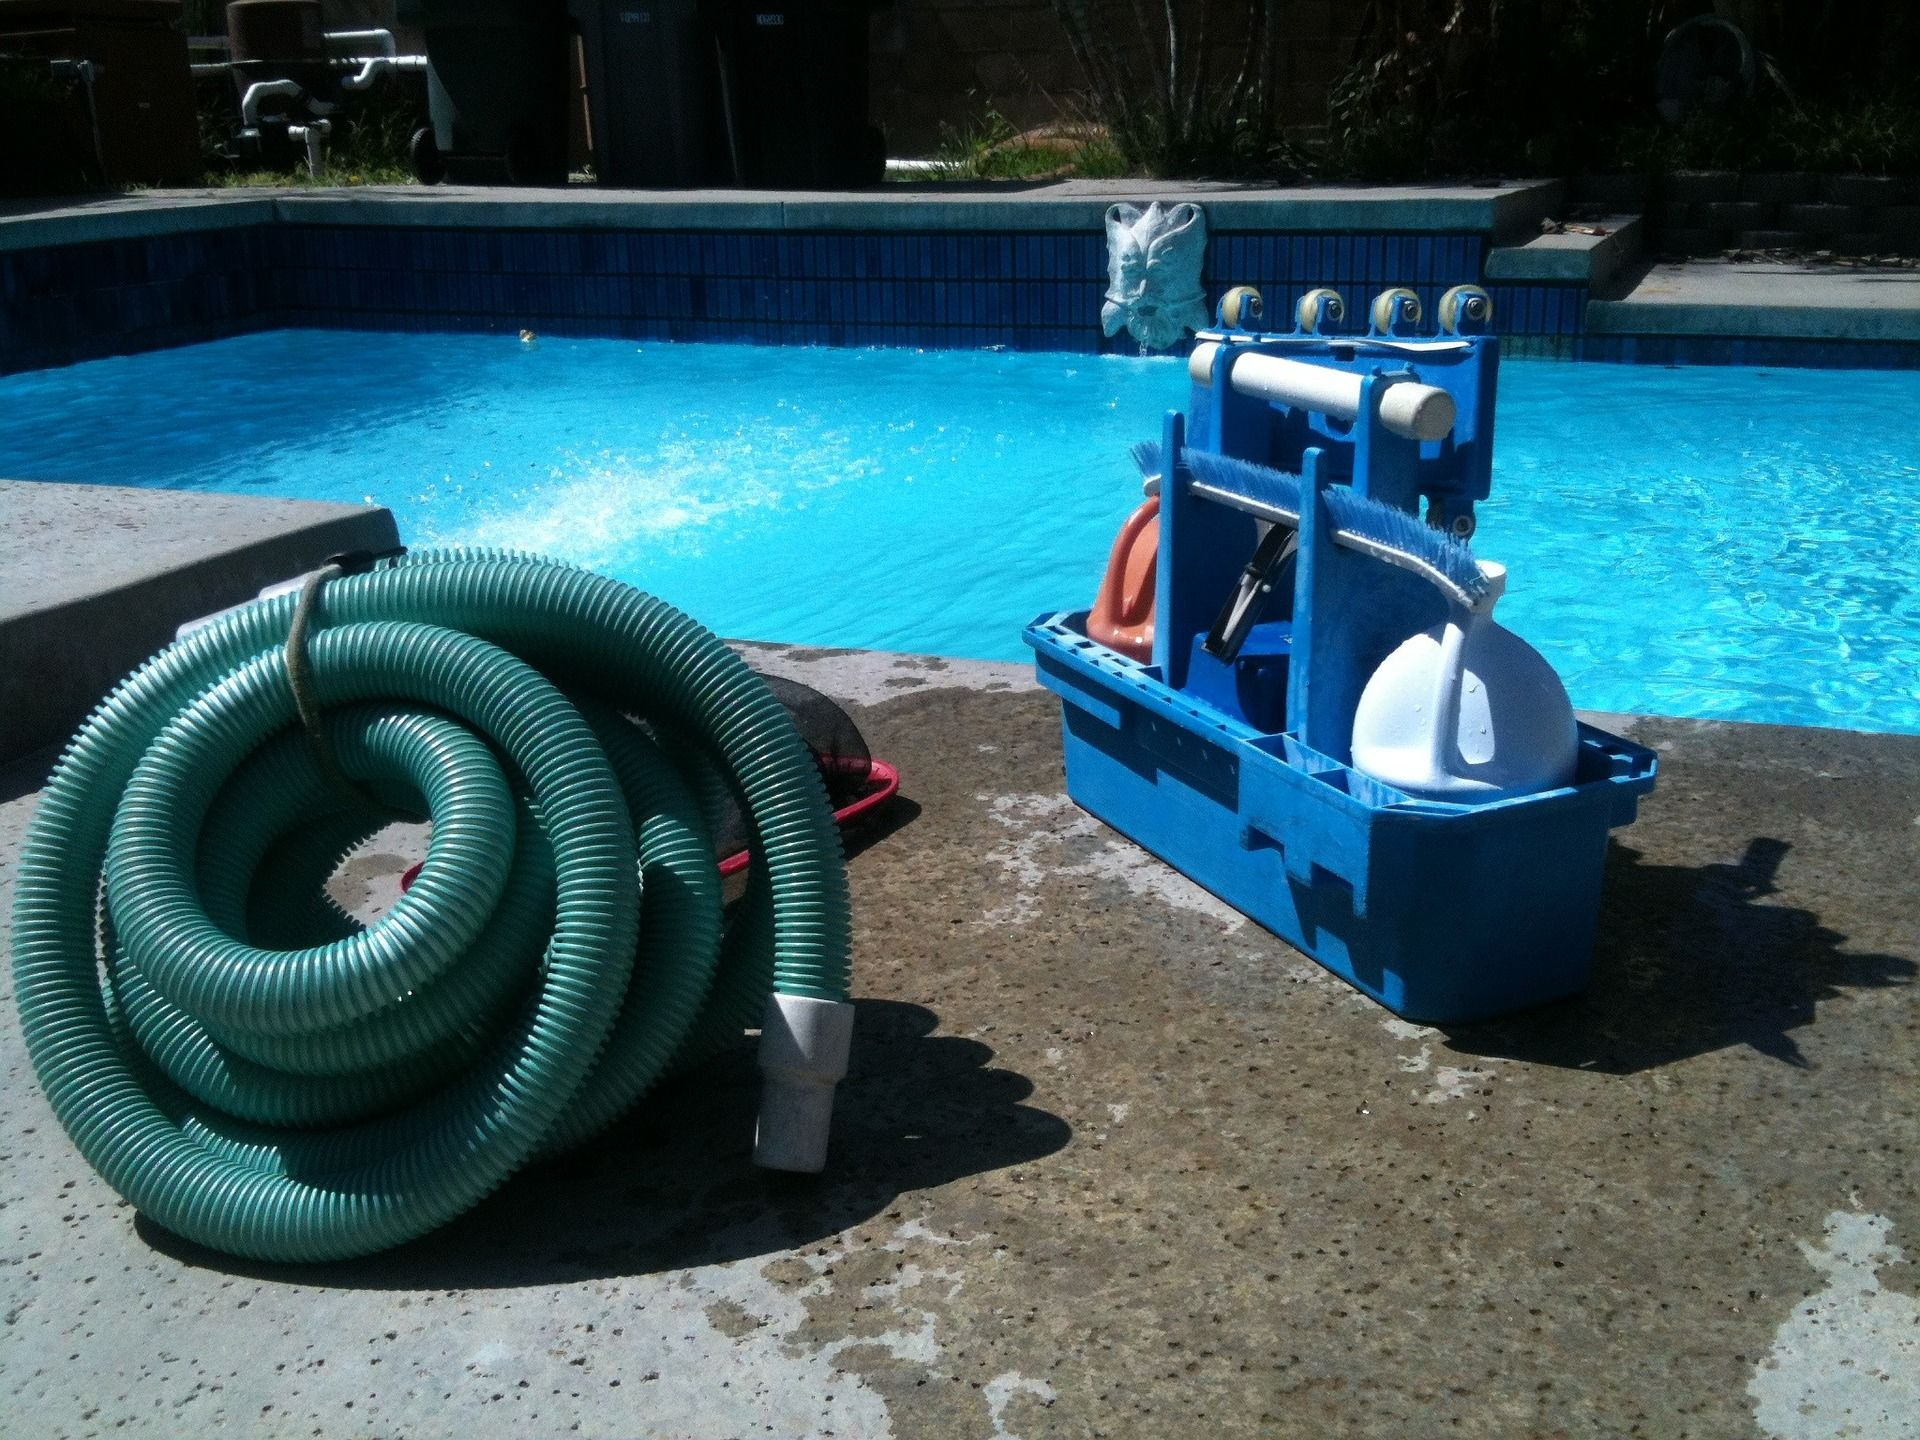 pool-cleaning-330399_1920